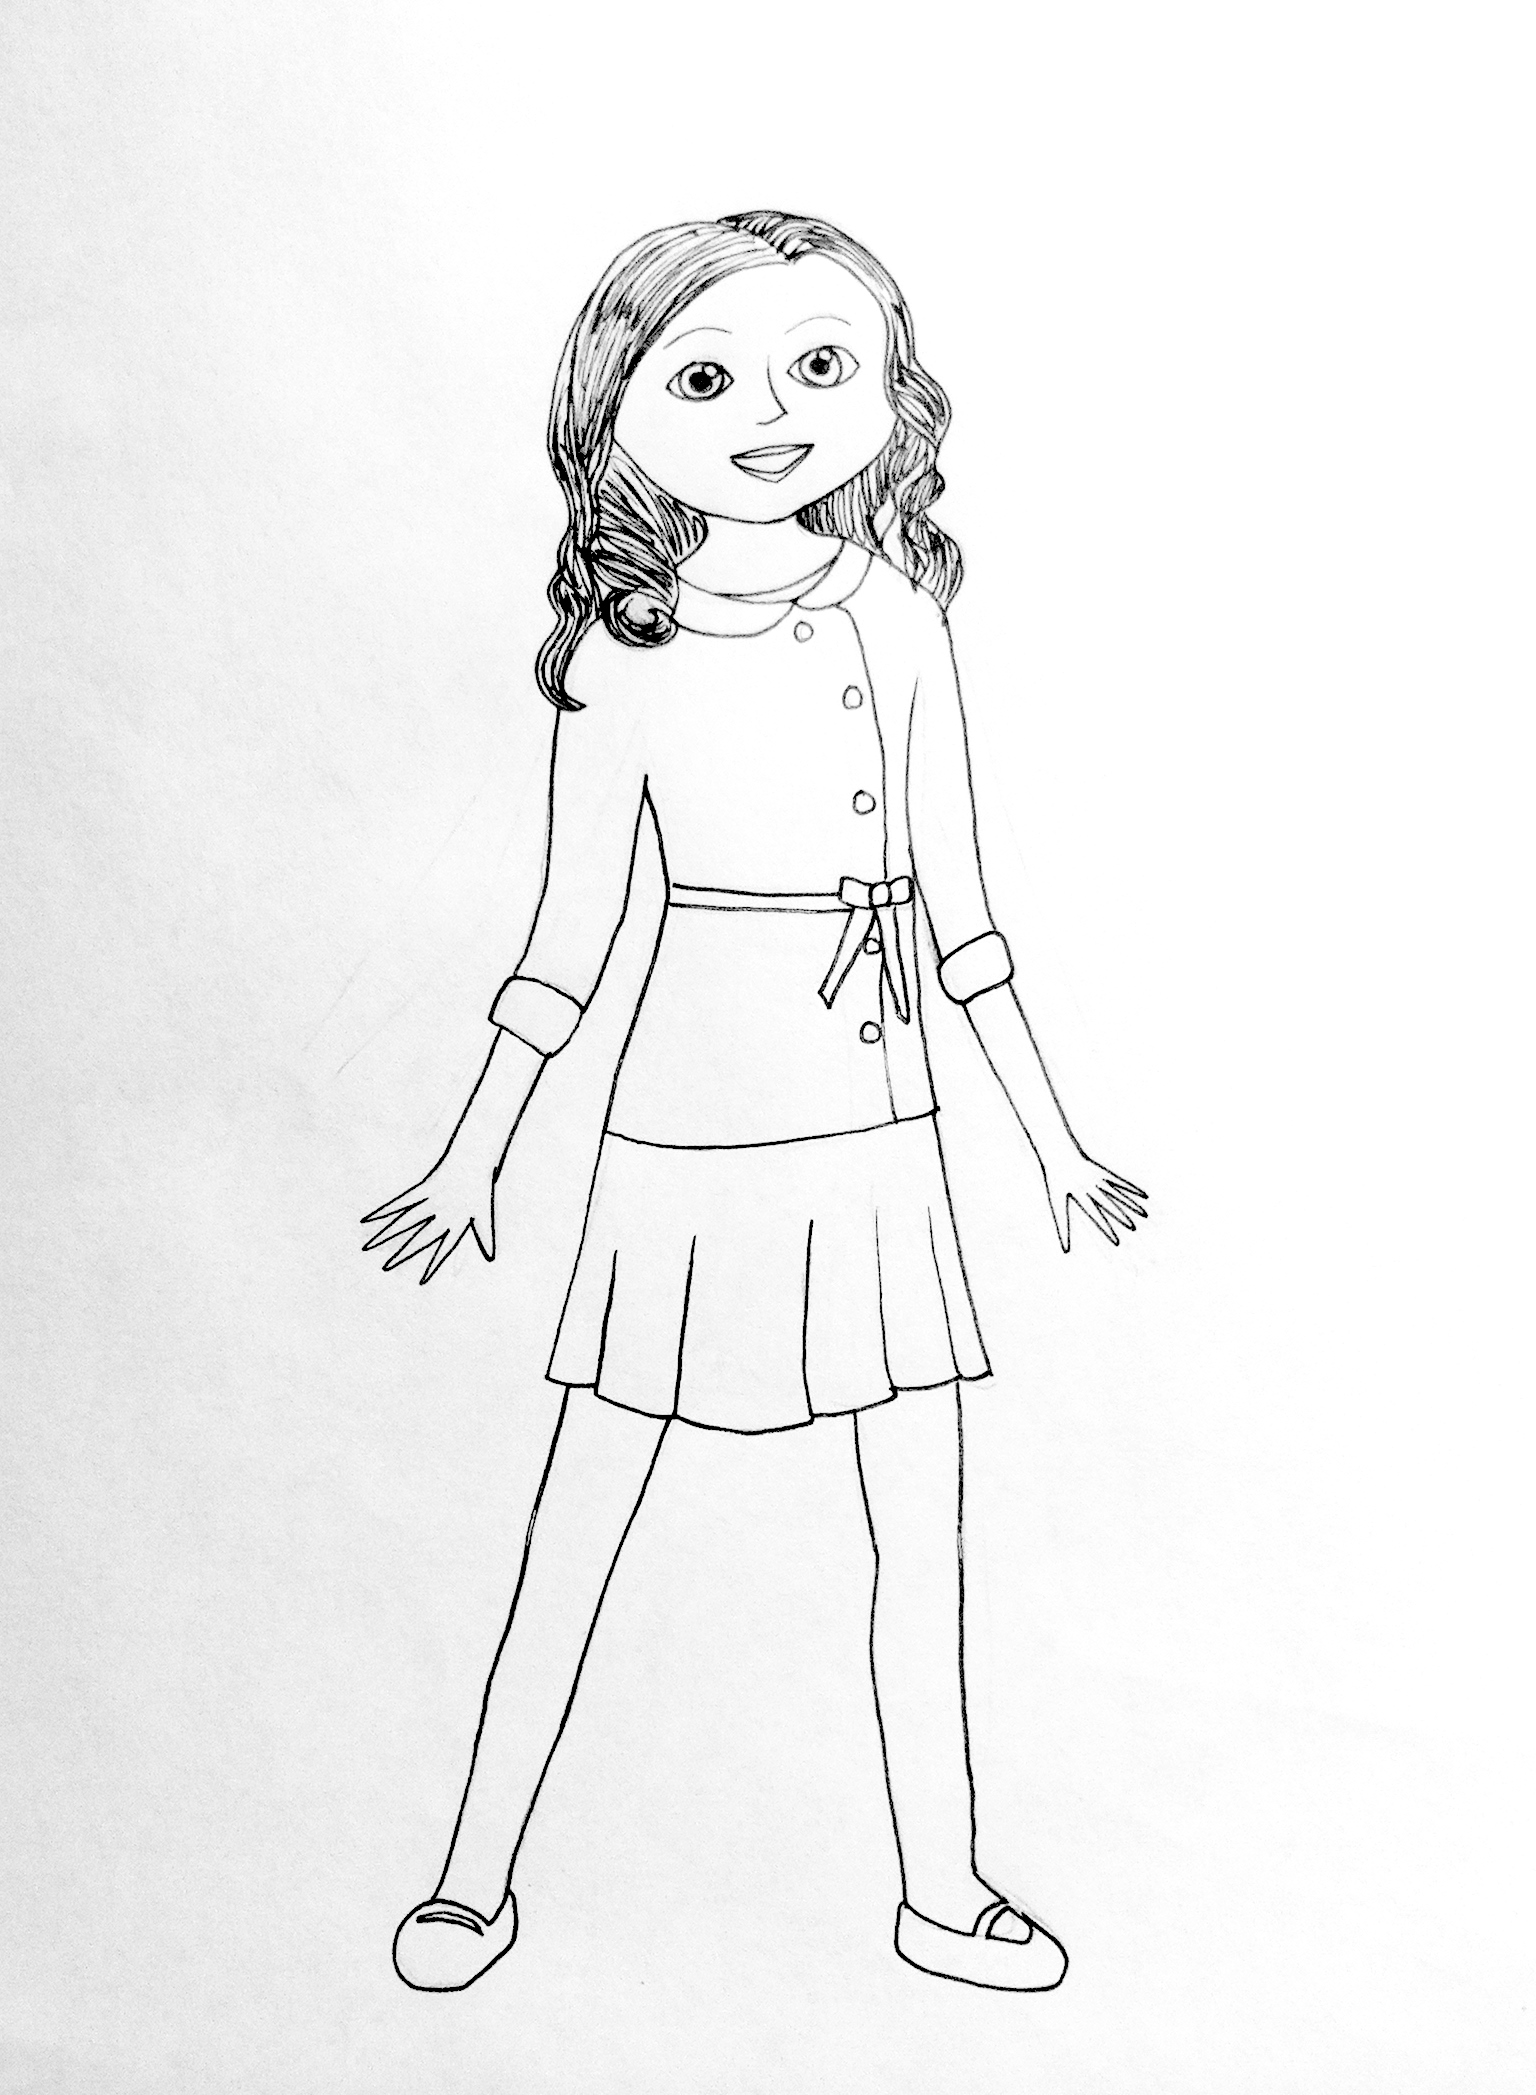 pictures of american girl dolls to color american girl coloring pages beforever small dolls in a of dolls color girl american pictures to